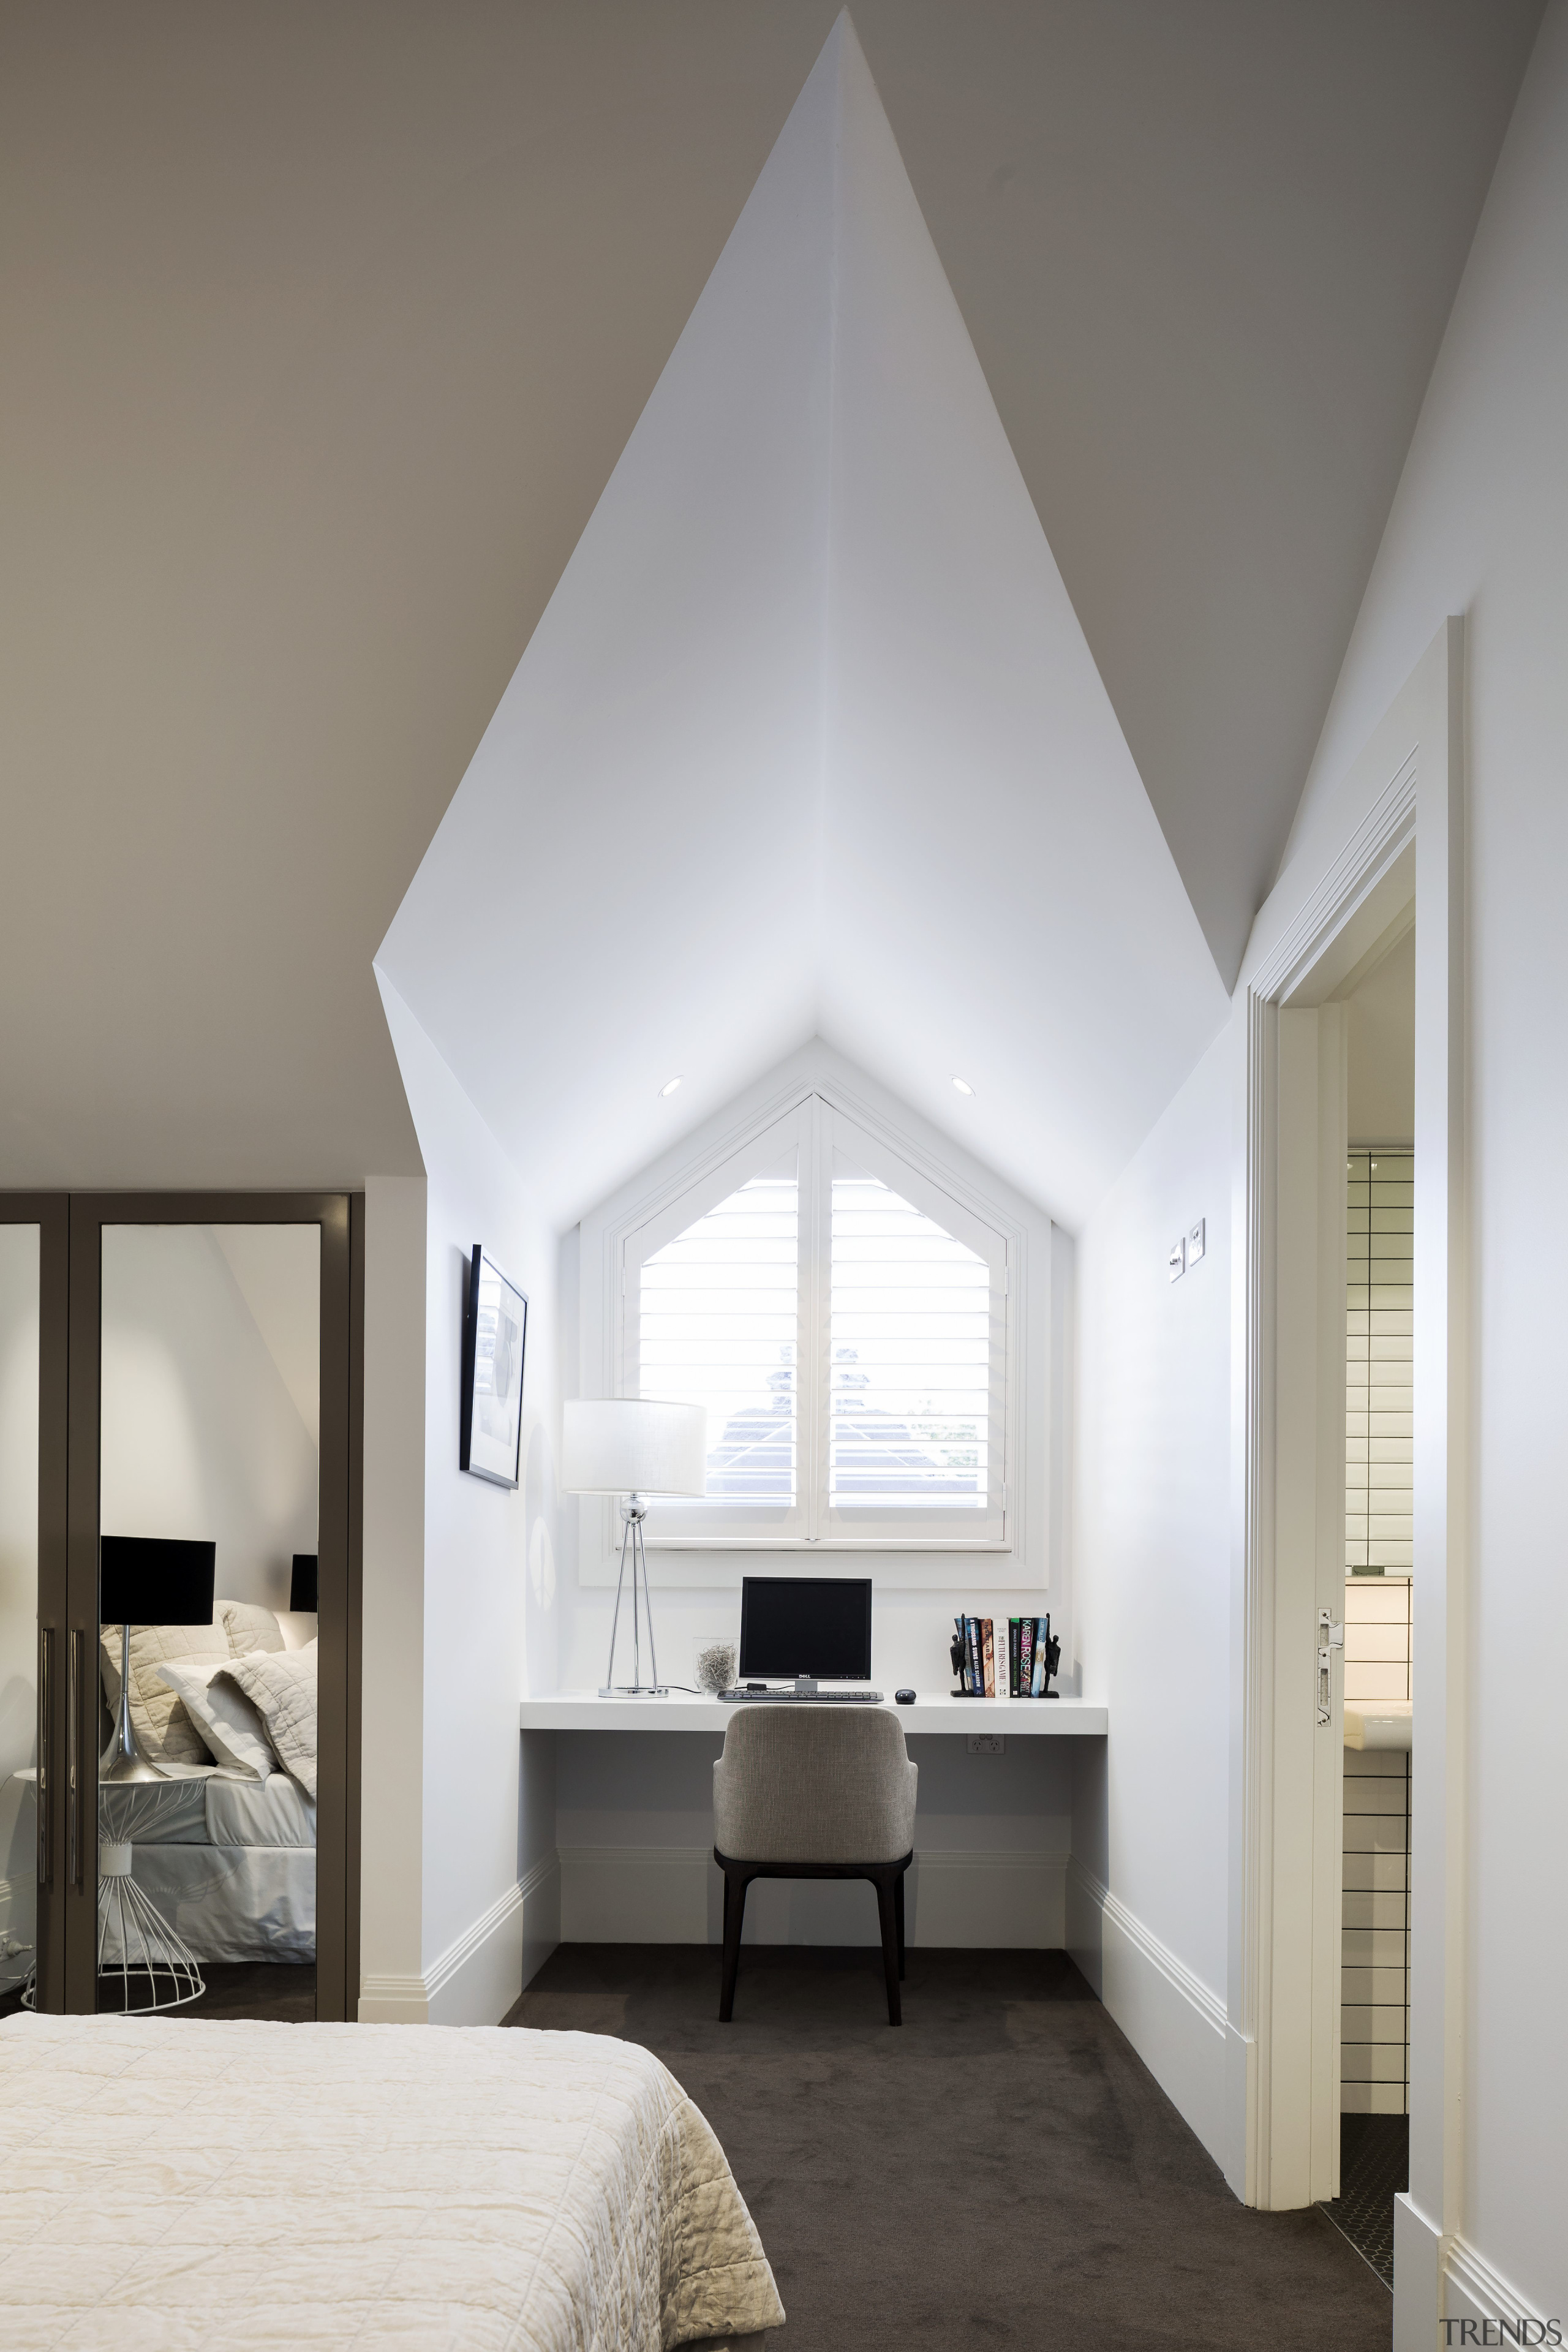 This soaring dormer creates a sculptural study space architecture, ceiling, daylighting, home, house, interior design, room, window, gray